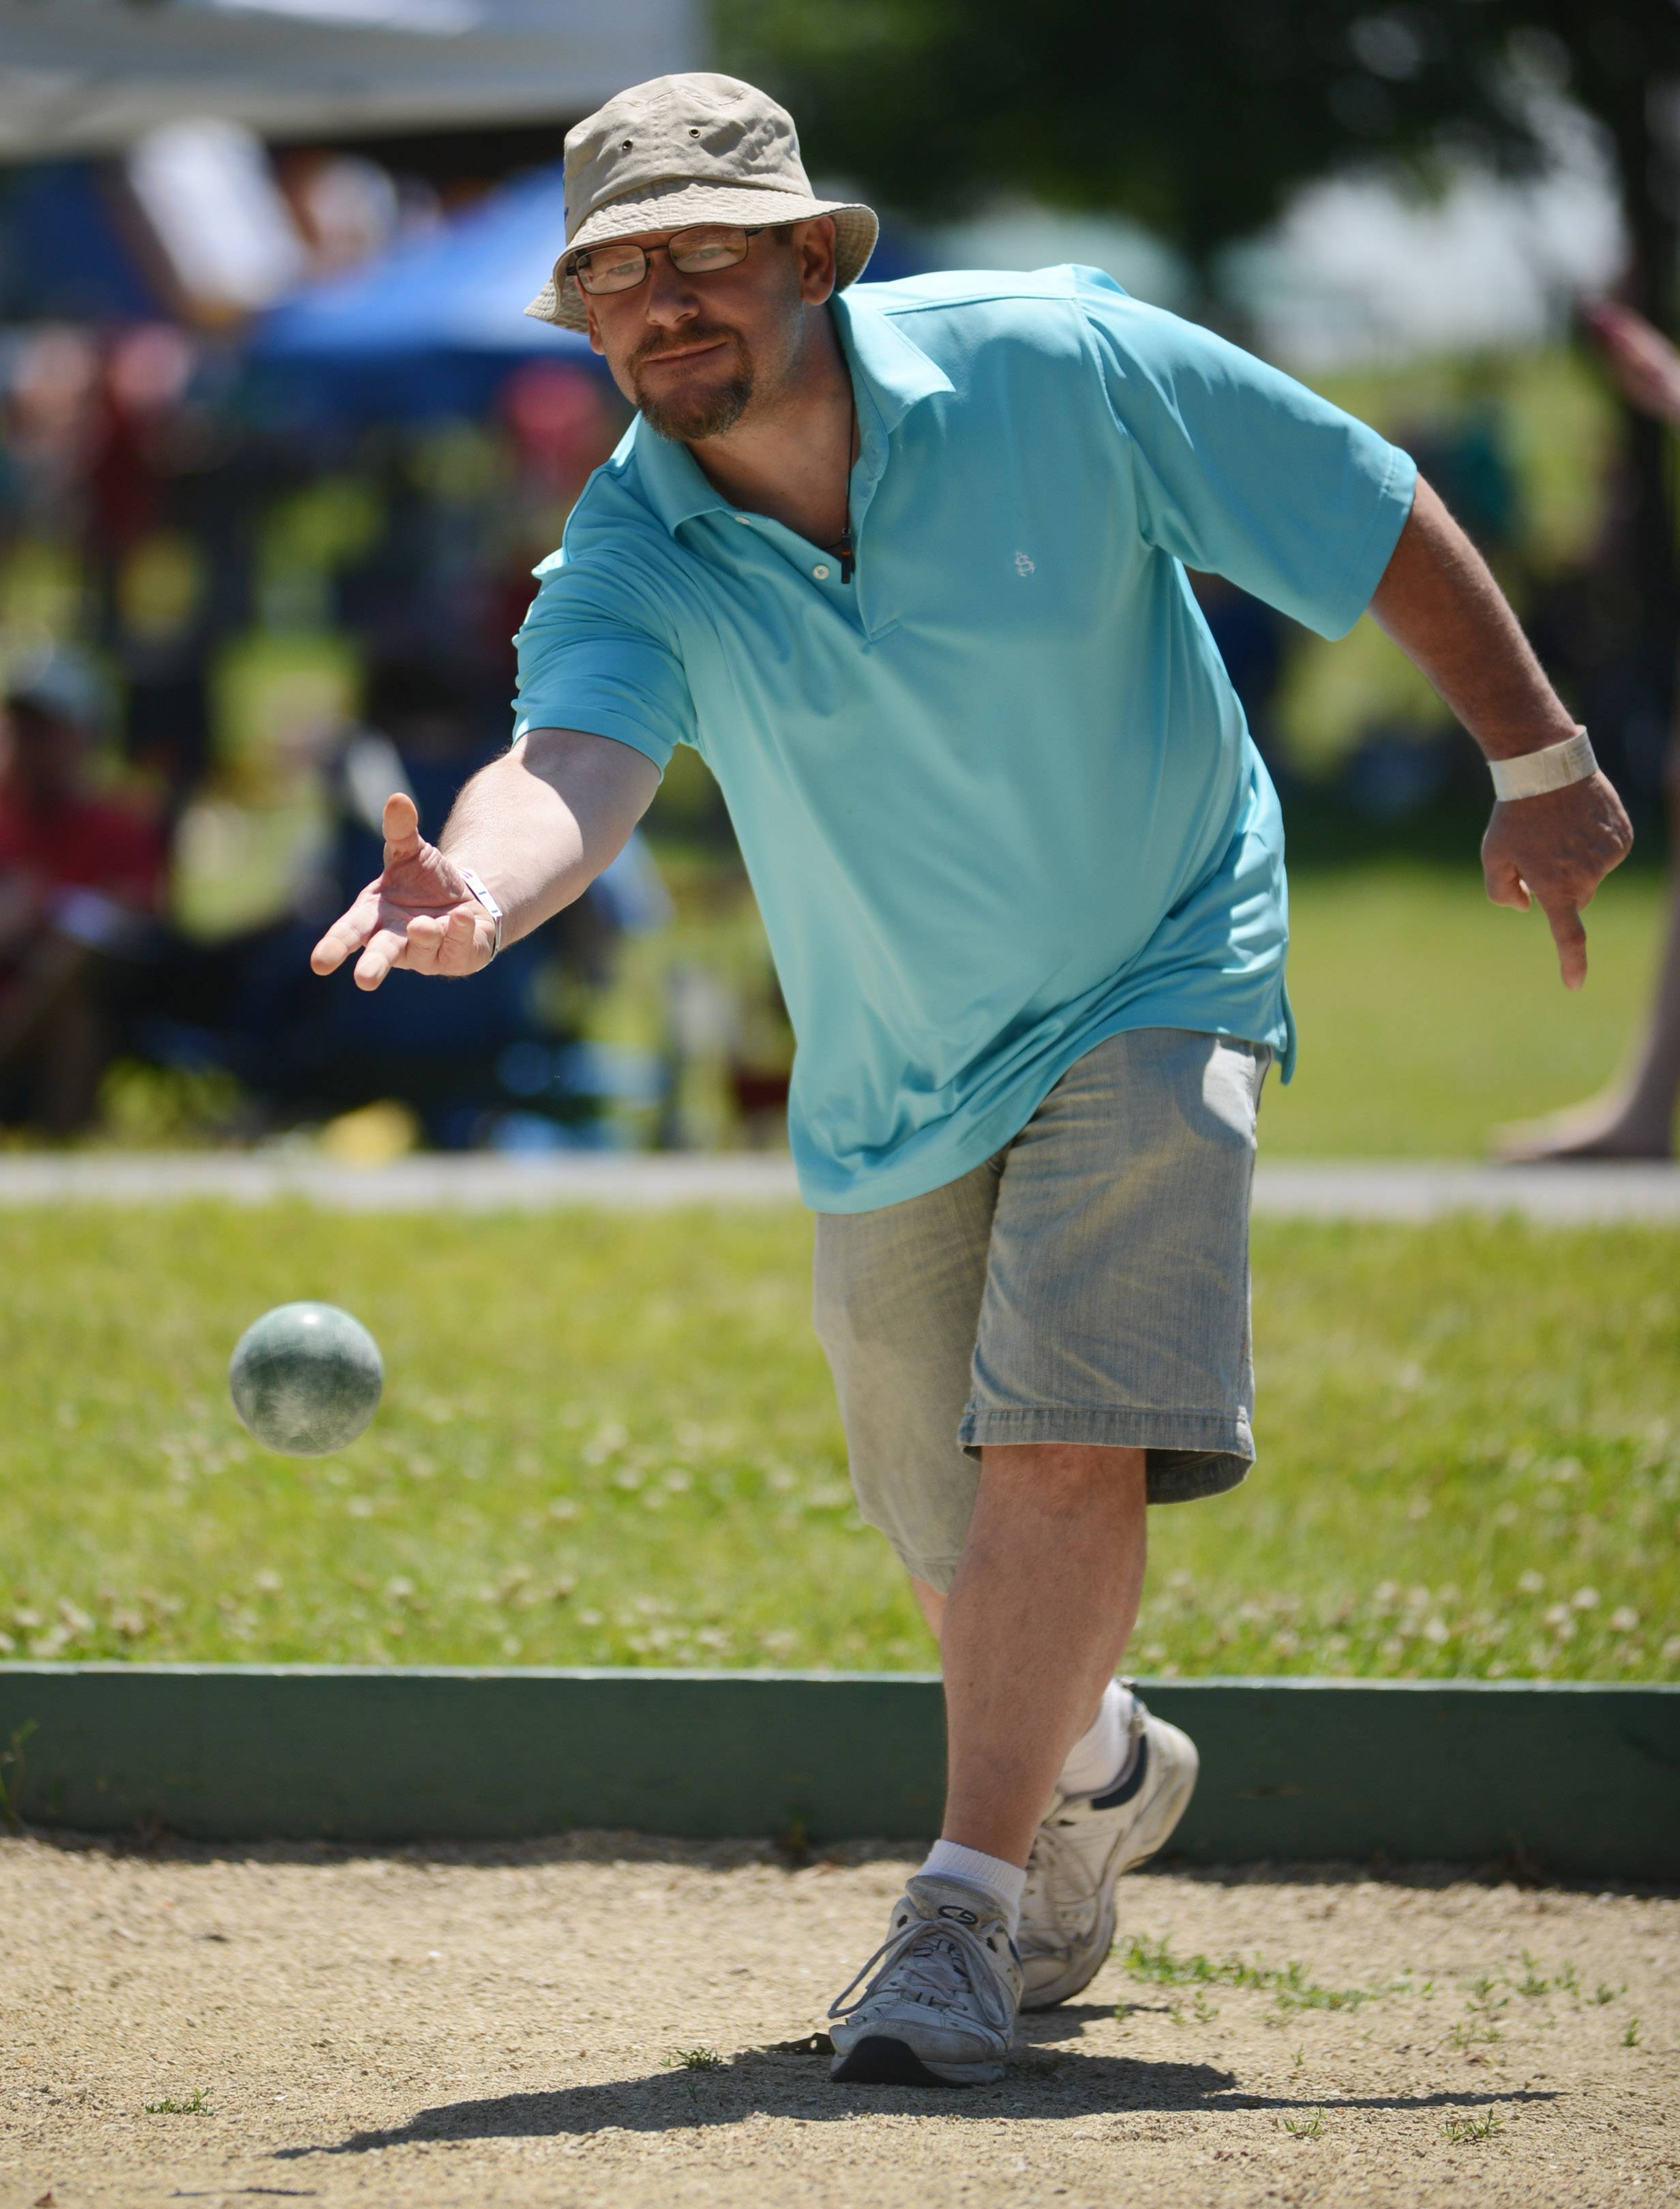 Veteran Shawn Bloomer of North Chicago plays bocce ball during the Lake Zurich Fourth of July family day in Paulus Park on Friday.